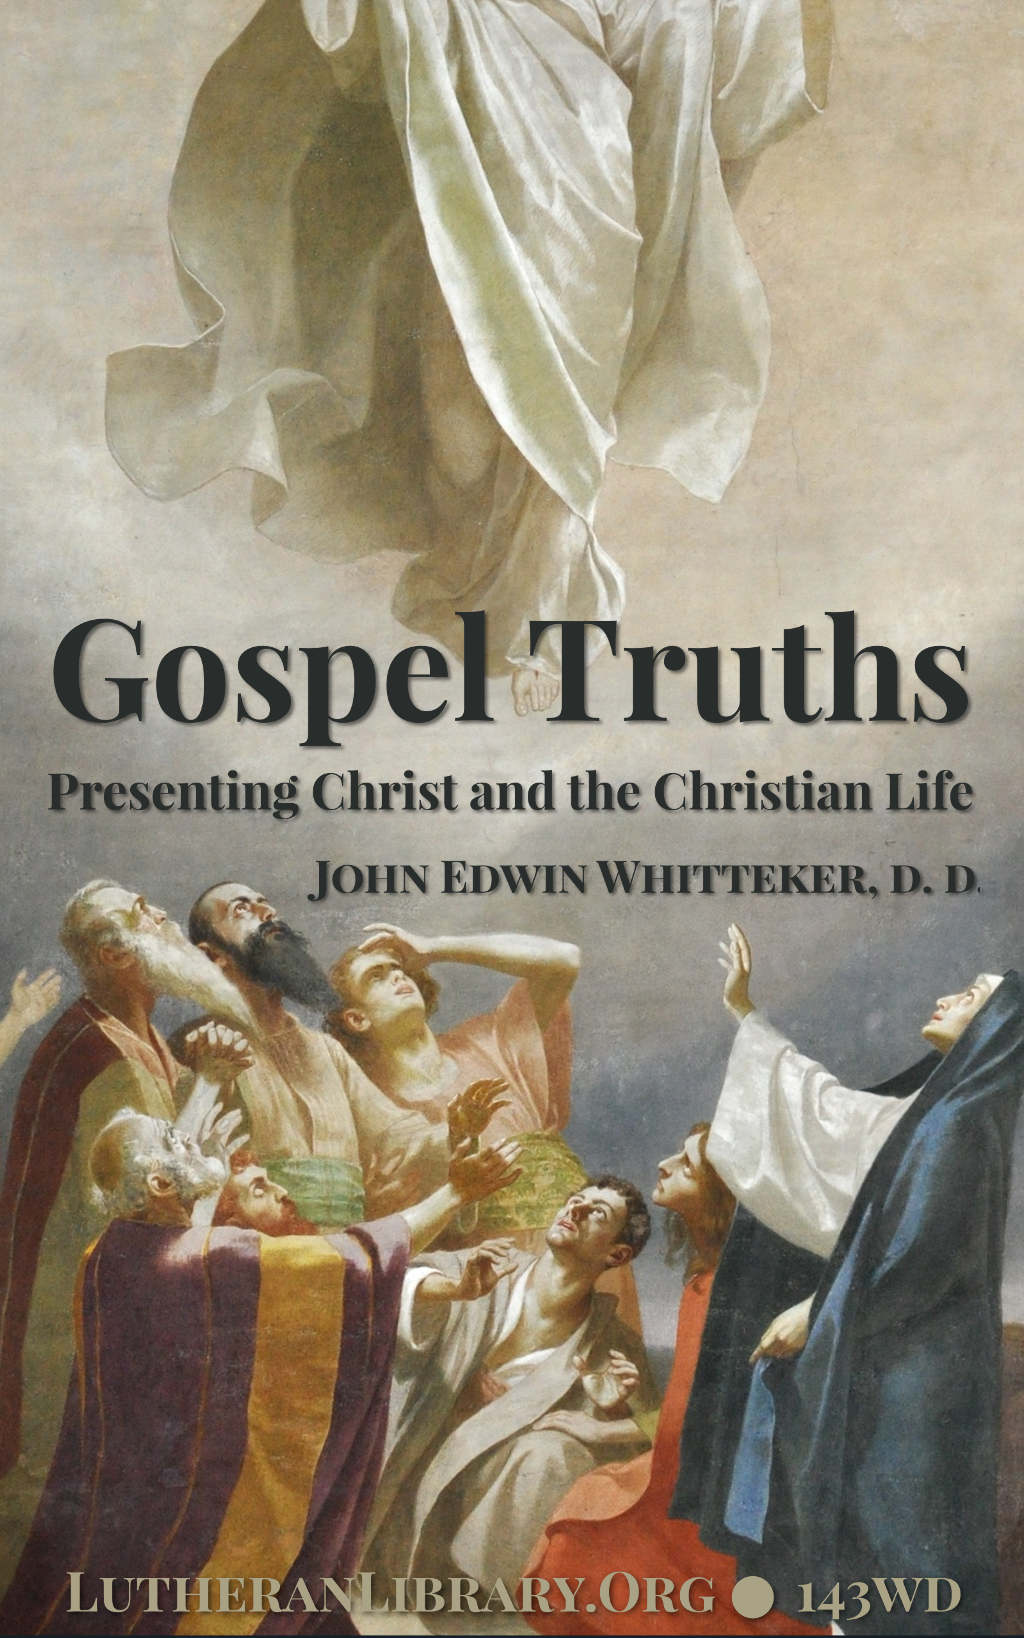 Gospel Truths: Presenting Christ and the Christian Life by John Edwin Whitteker